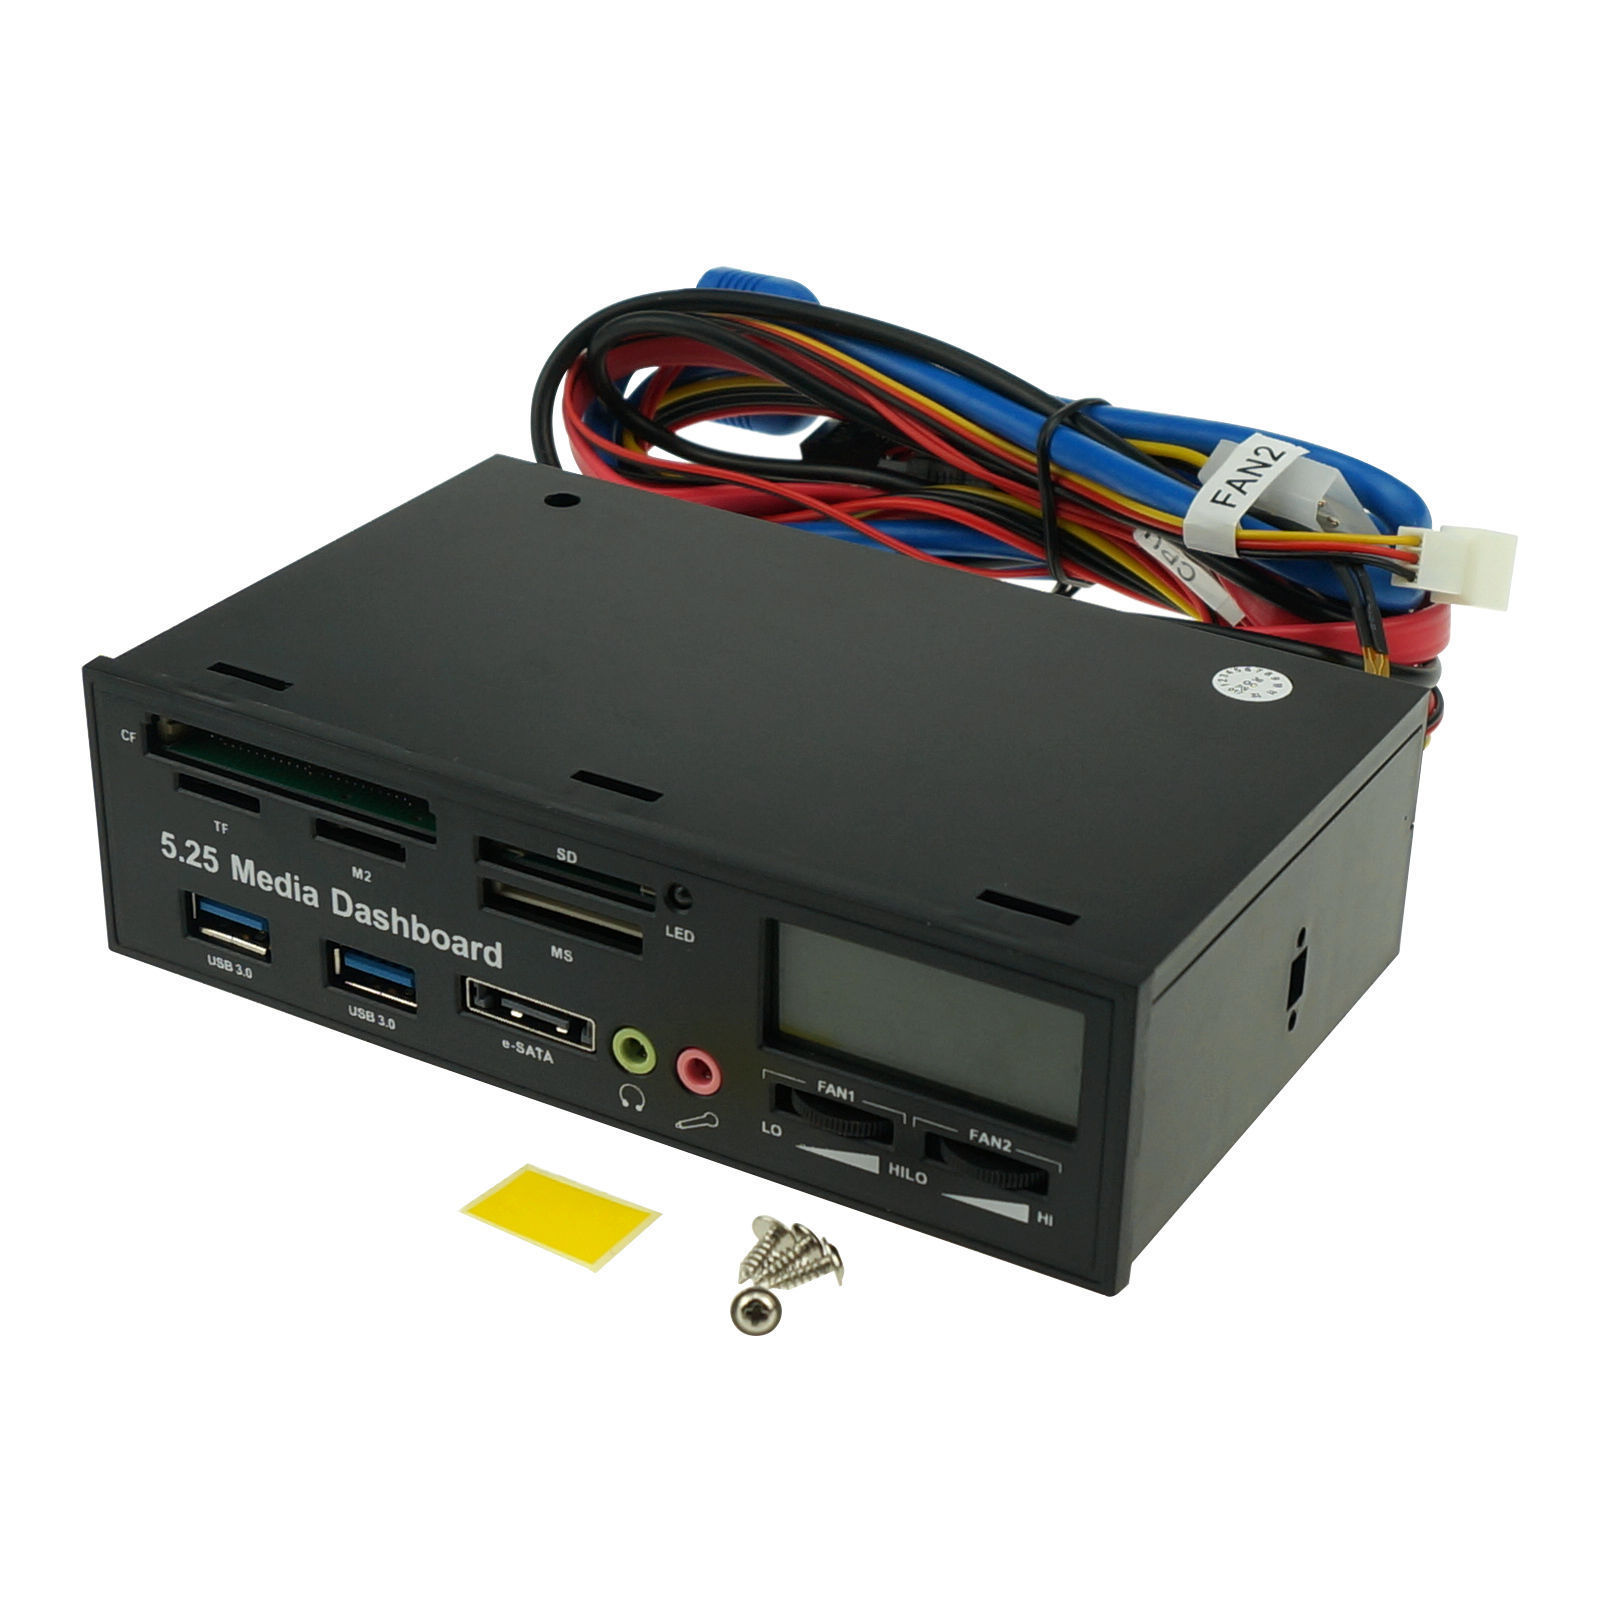 Details about 5 25'' Desktop PC Front Panel Media Dashboard Fan Control  Card Reader USB 3 0